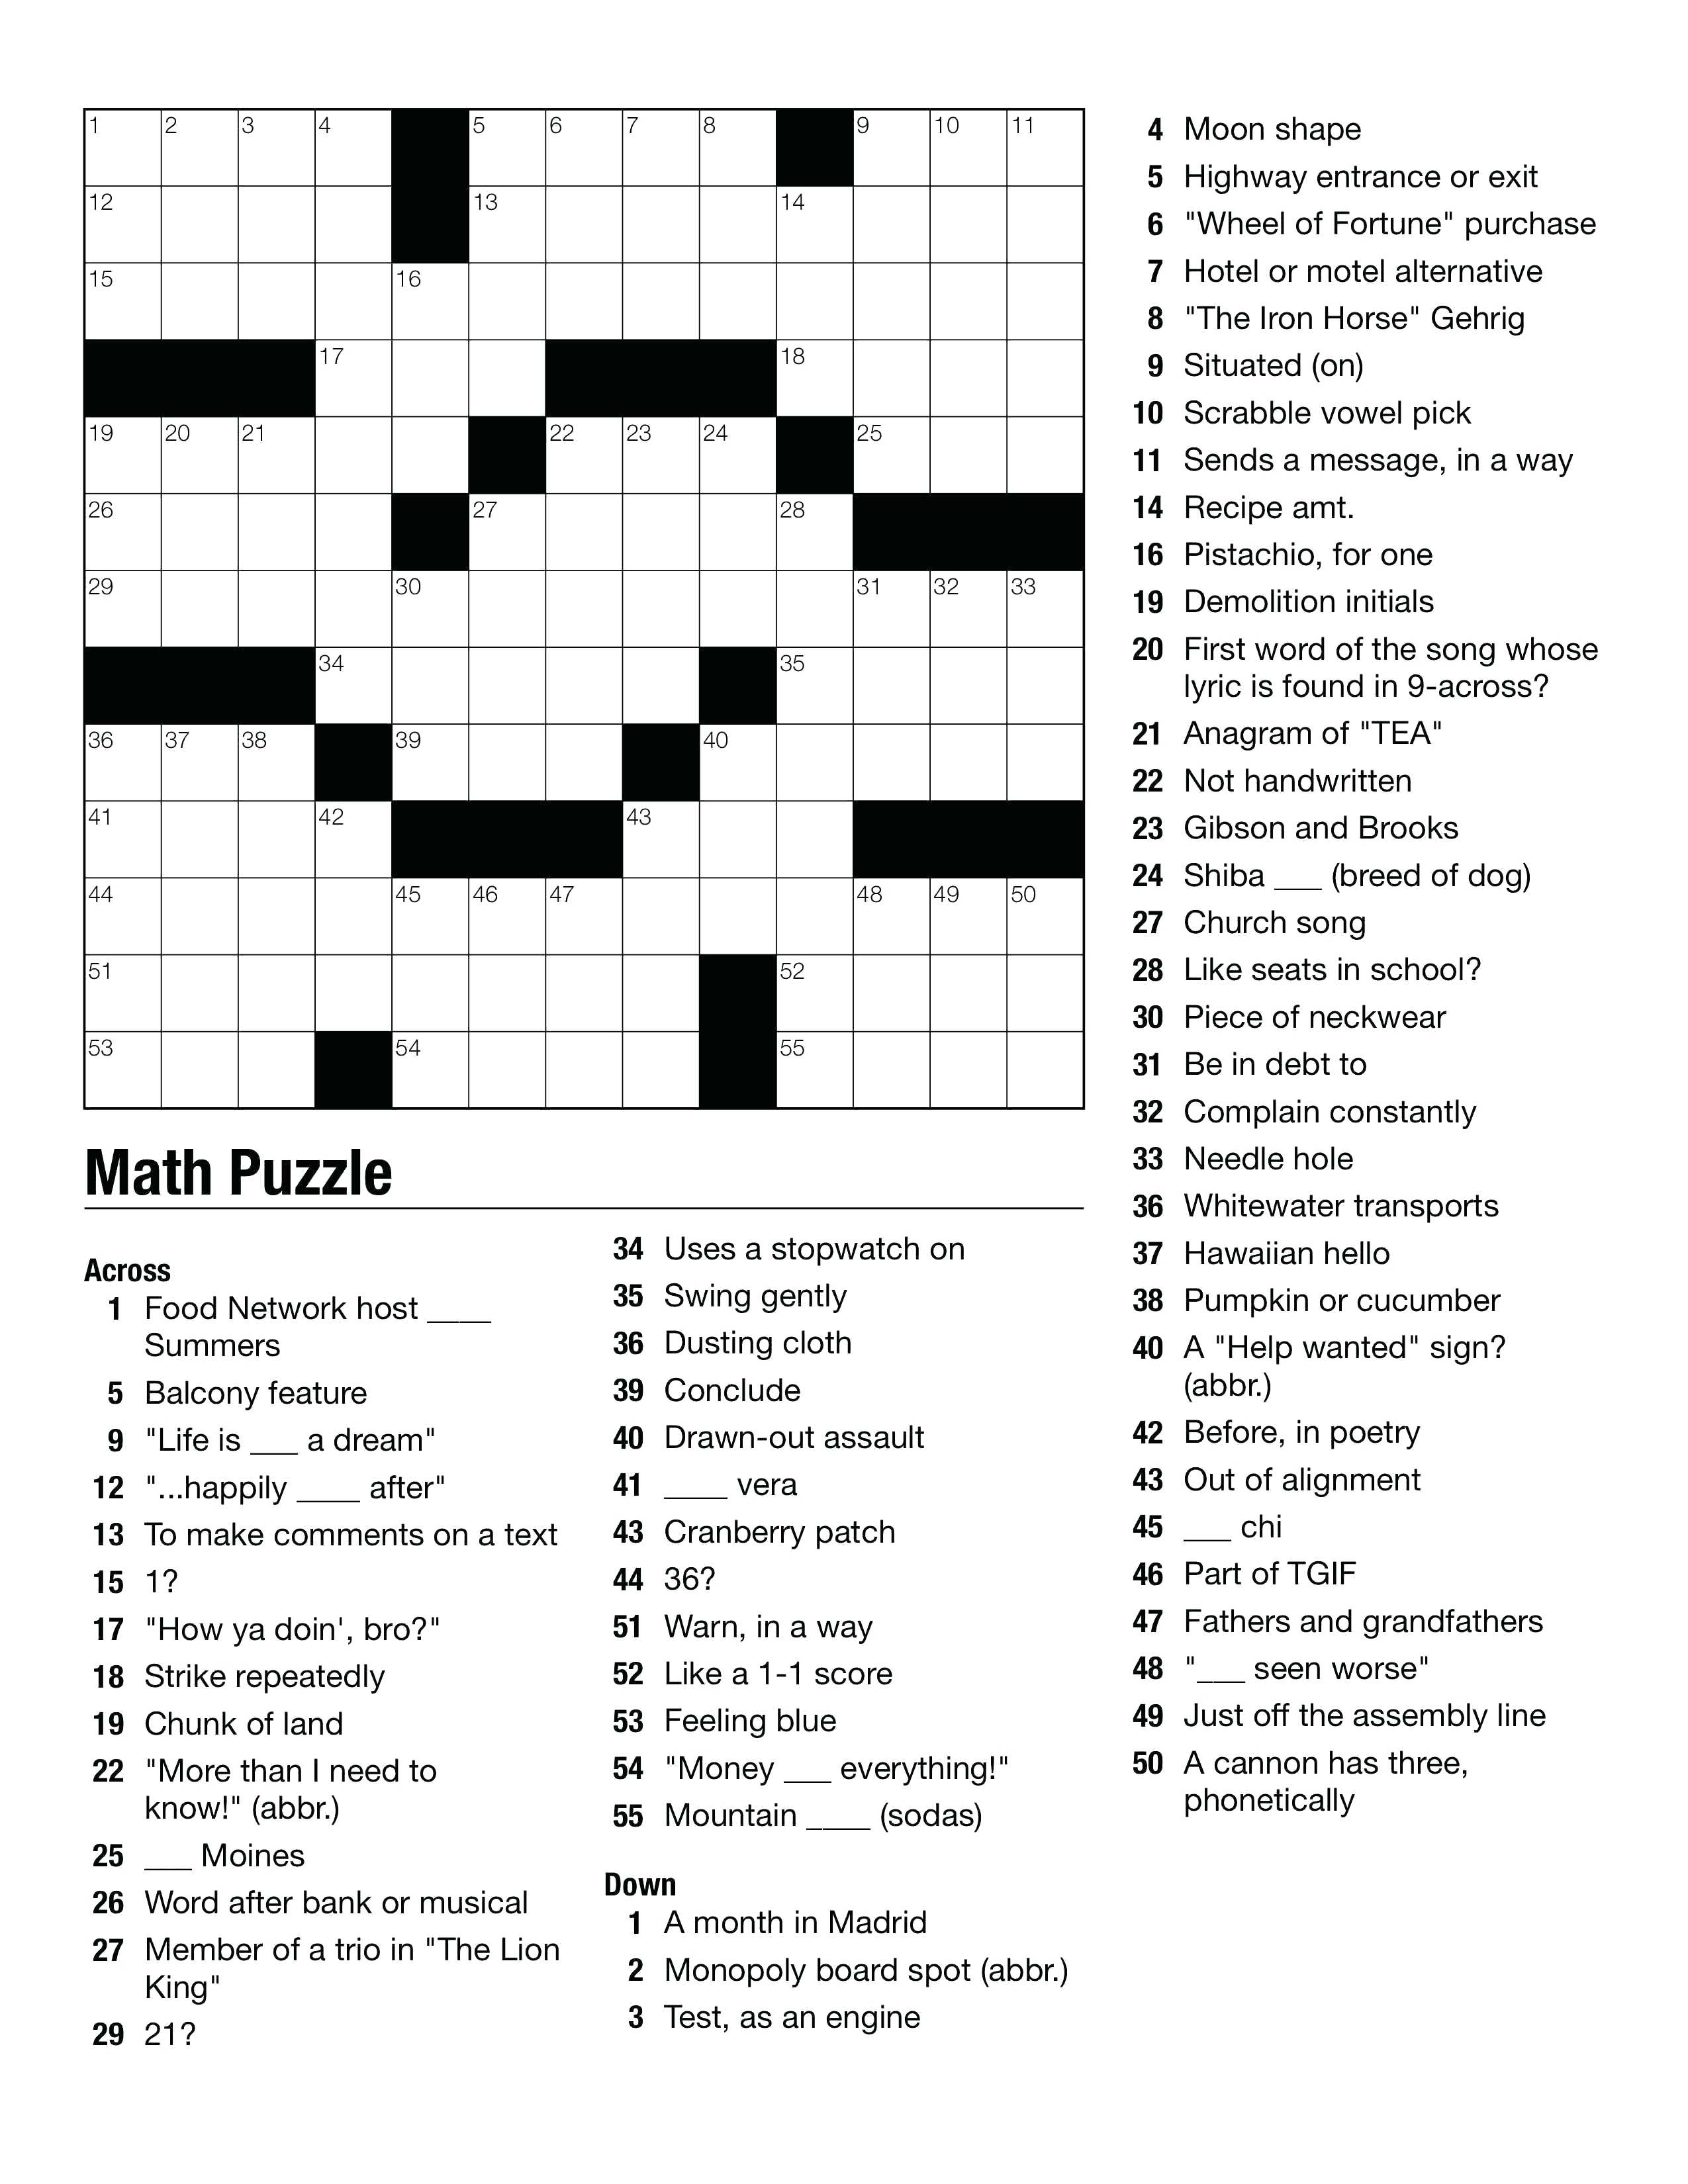 Geometry Puzzles Math – Upskill.club - Printable Crossword Puzzle For Middle School